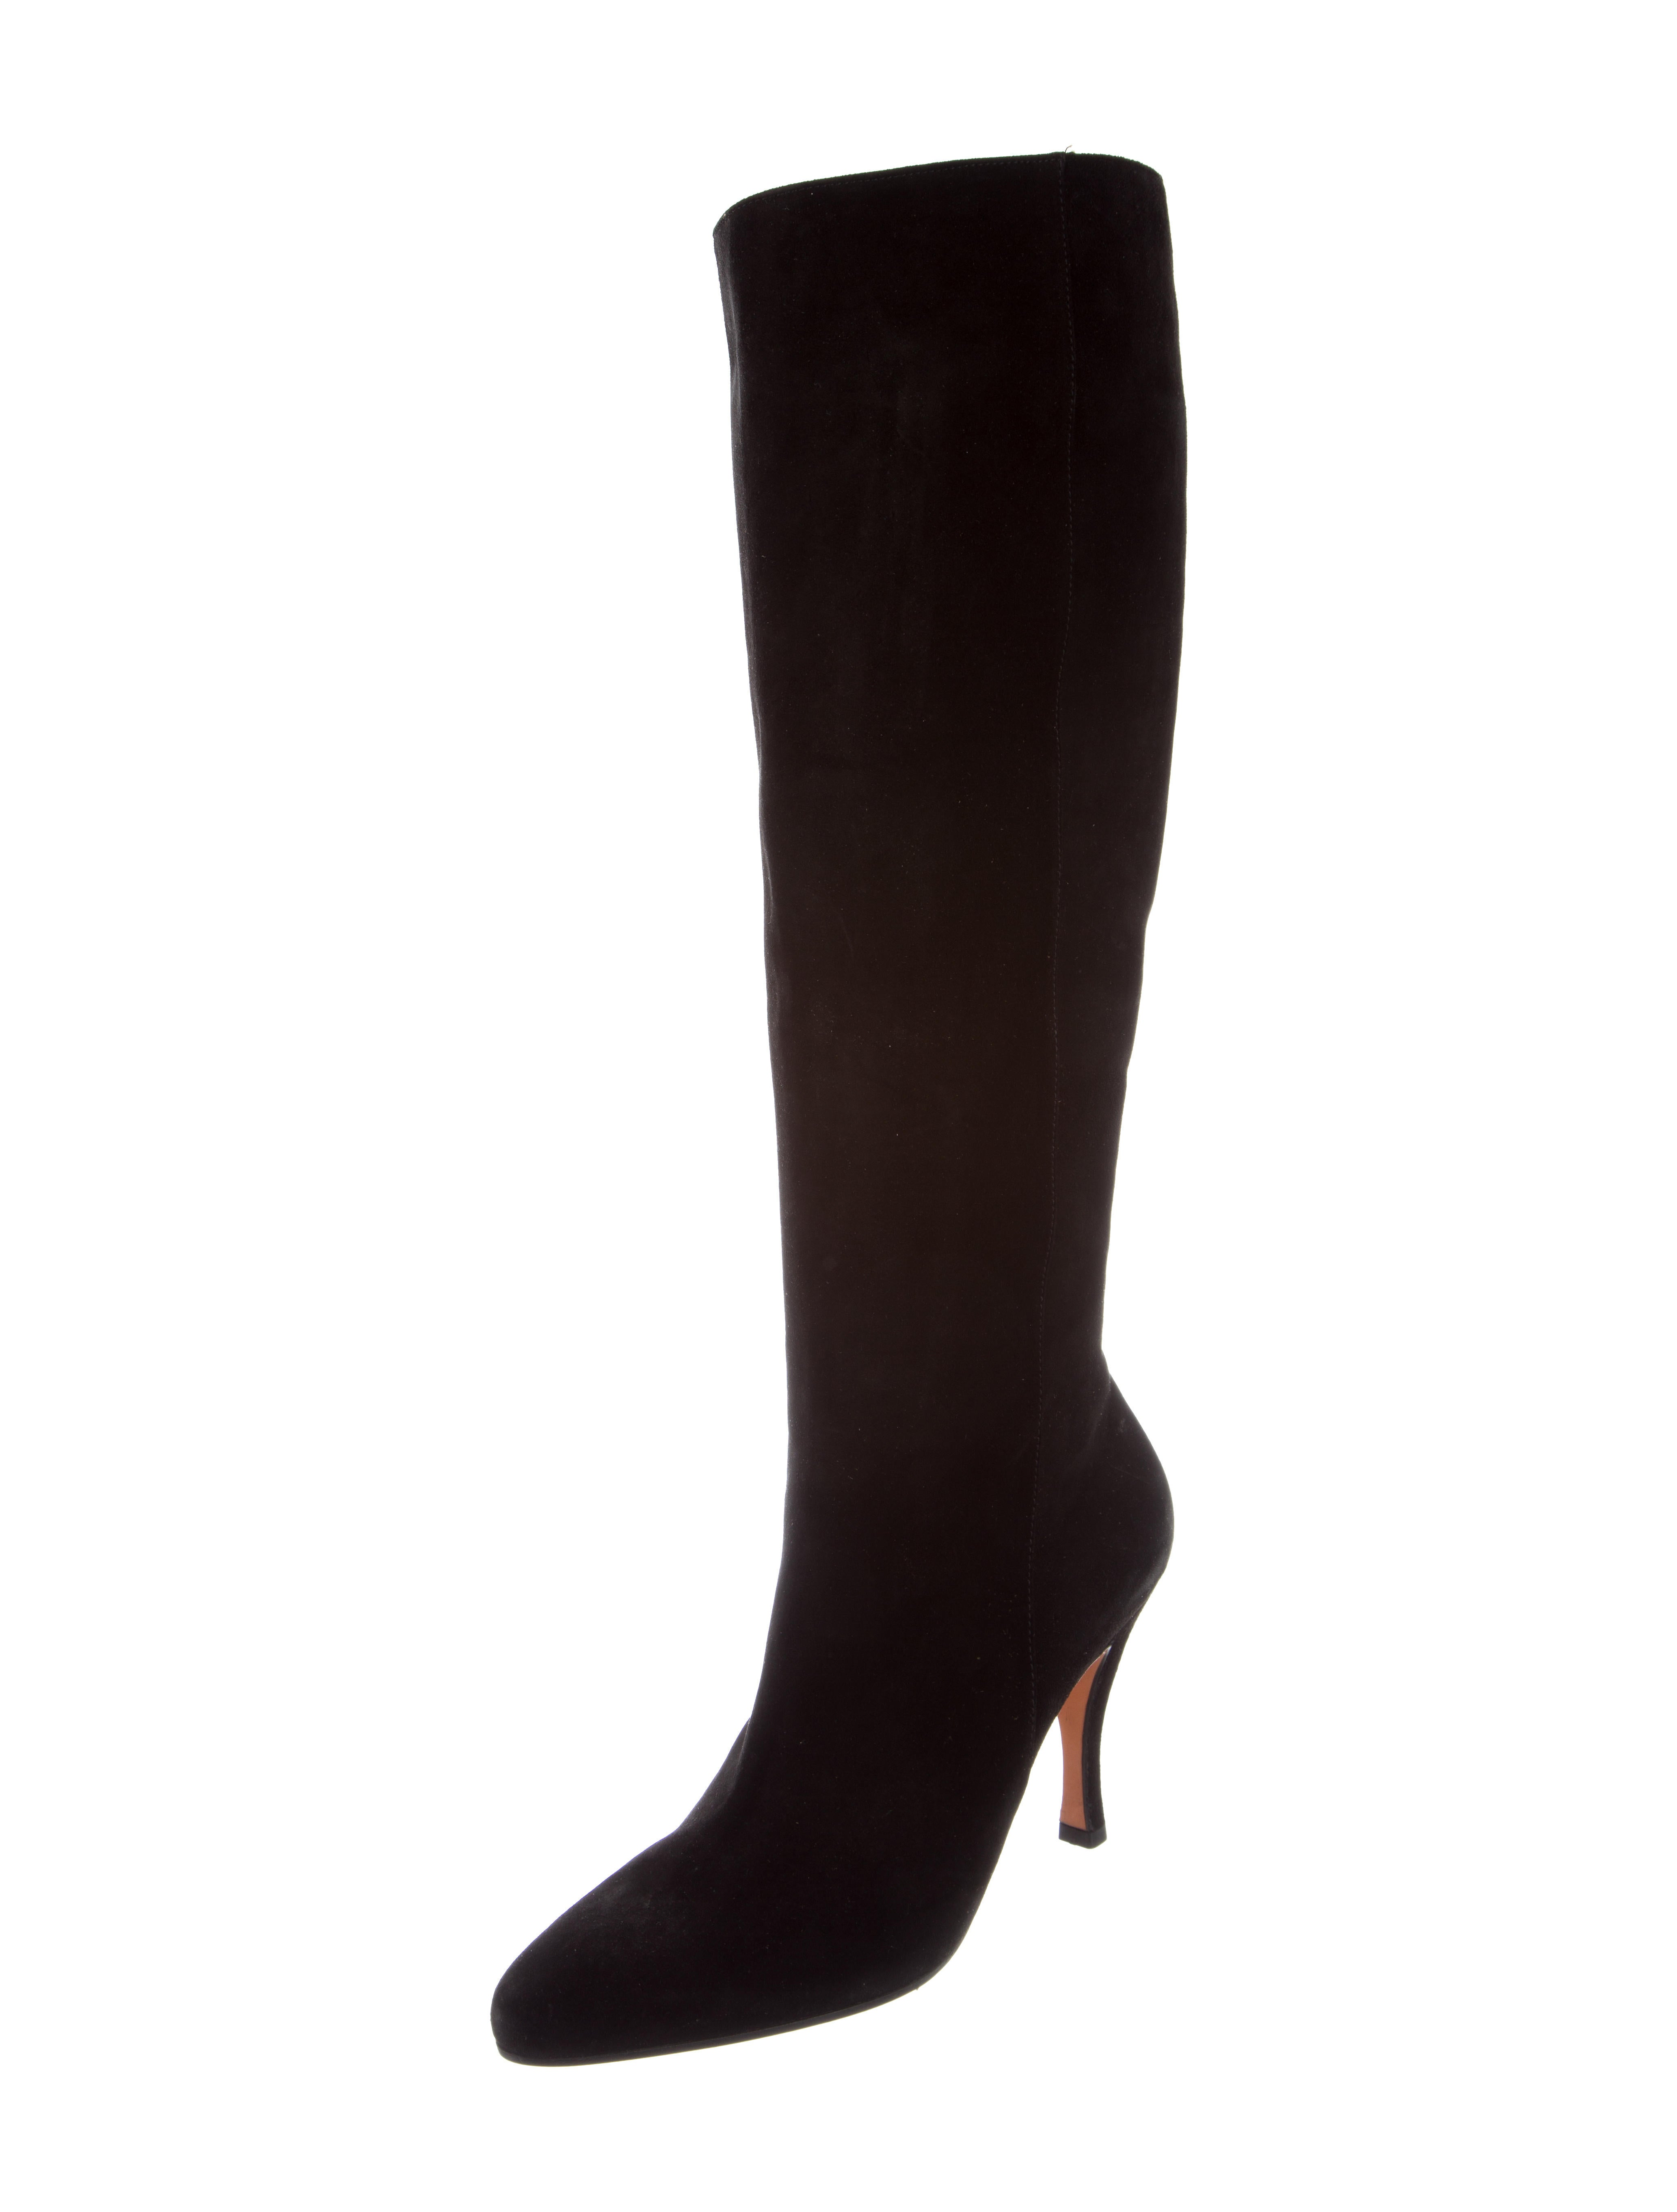 salvatore ferragamo knee high pointed toe boots shoes